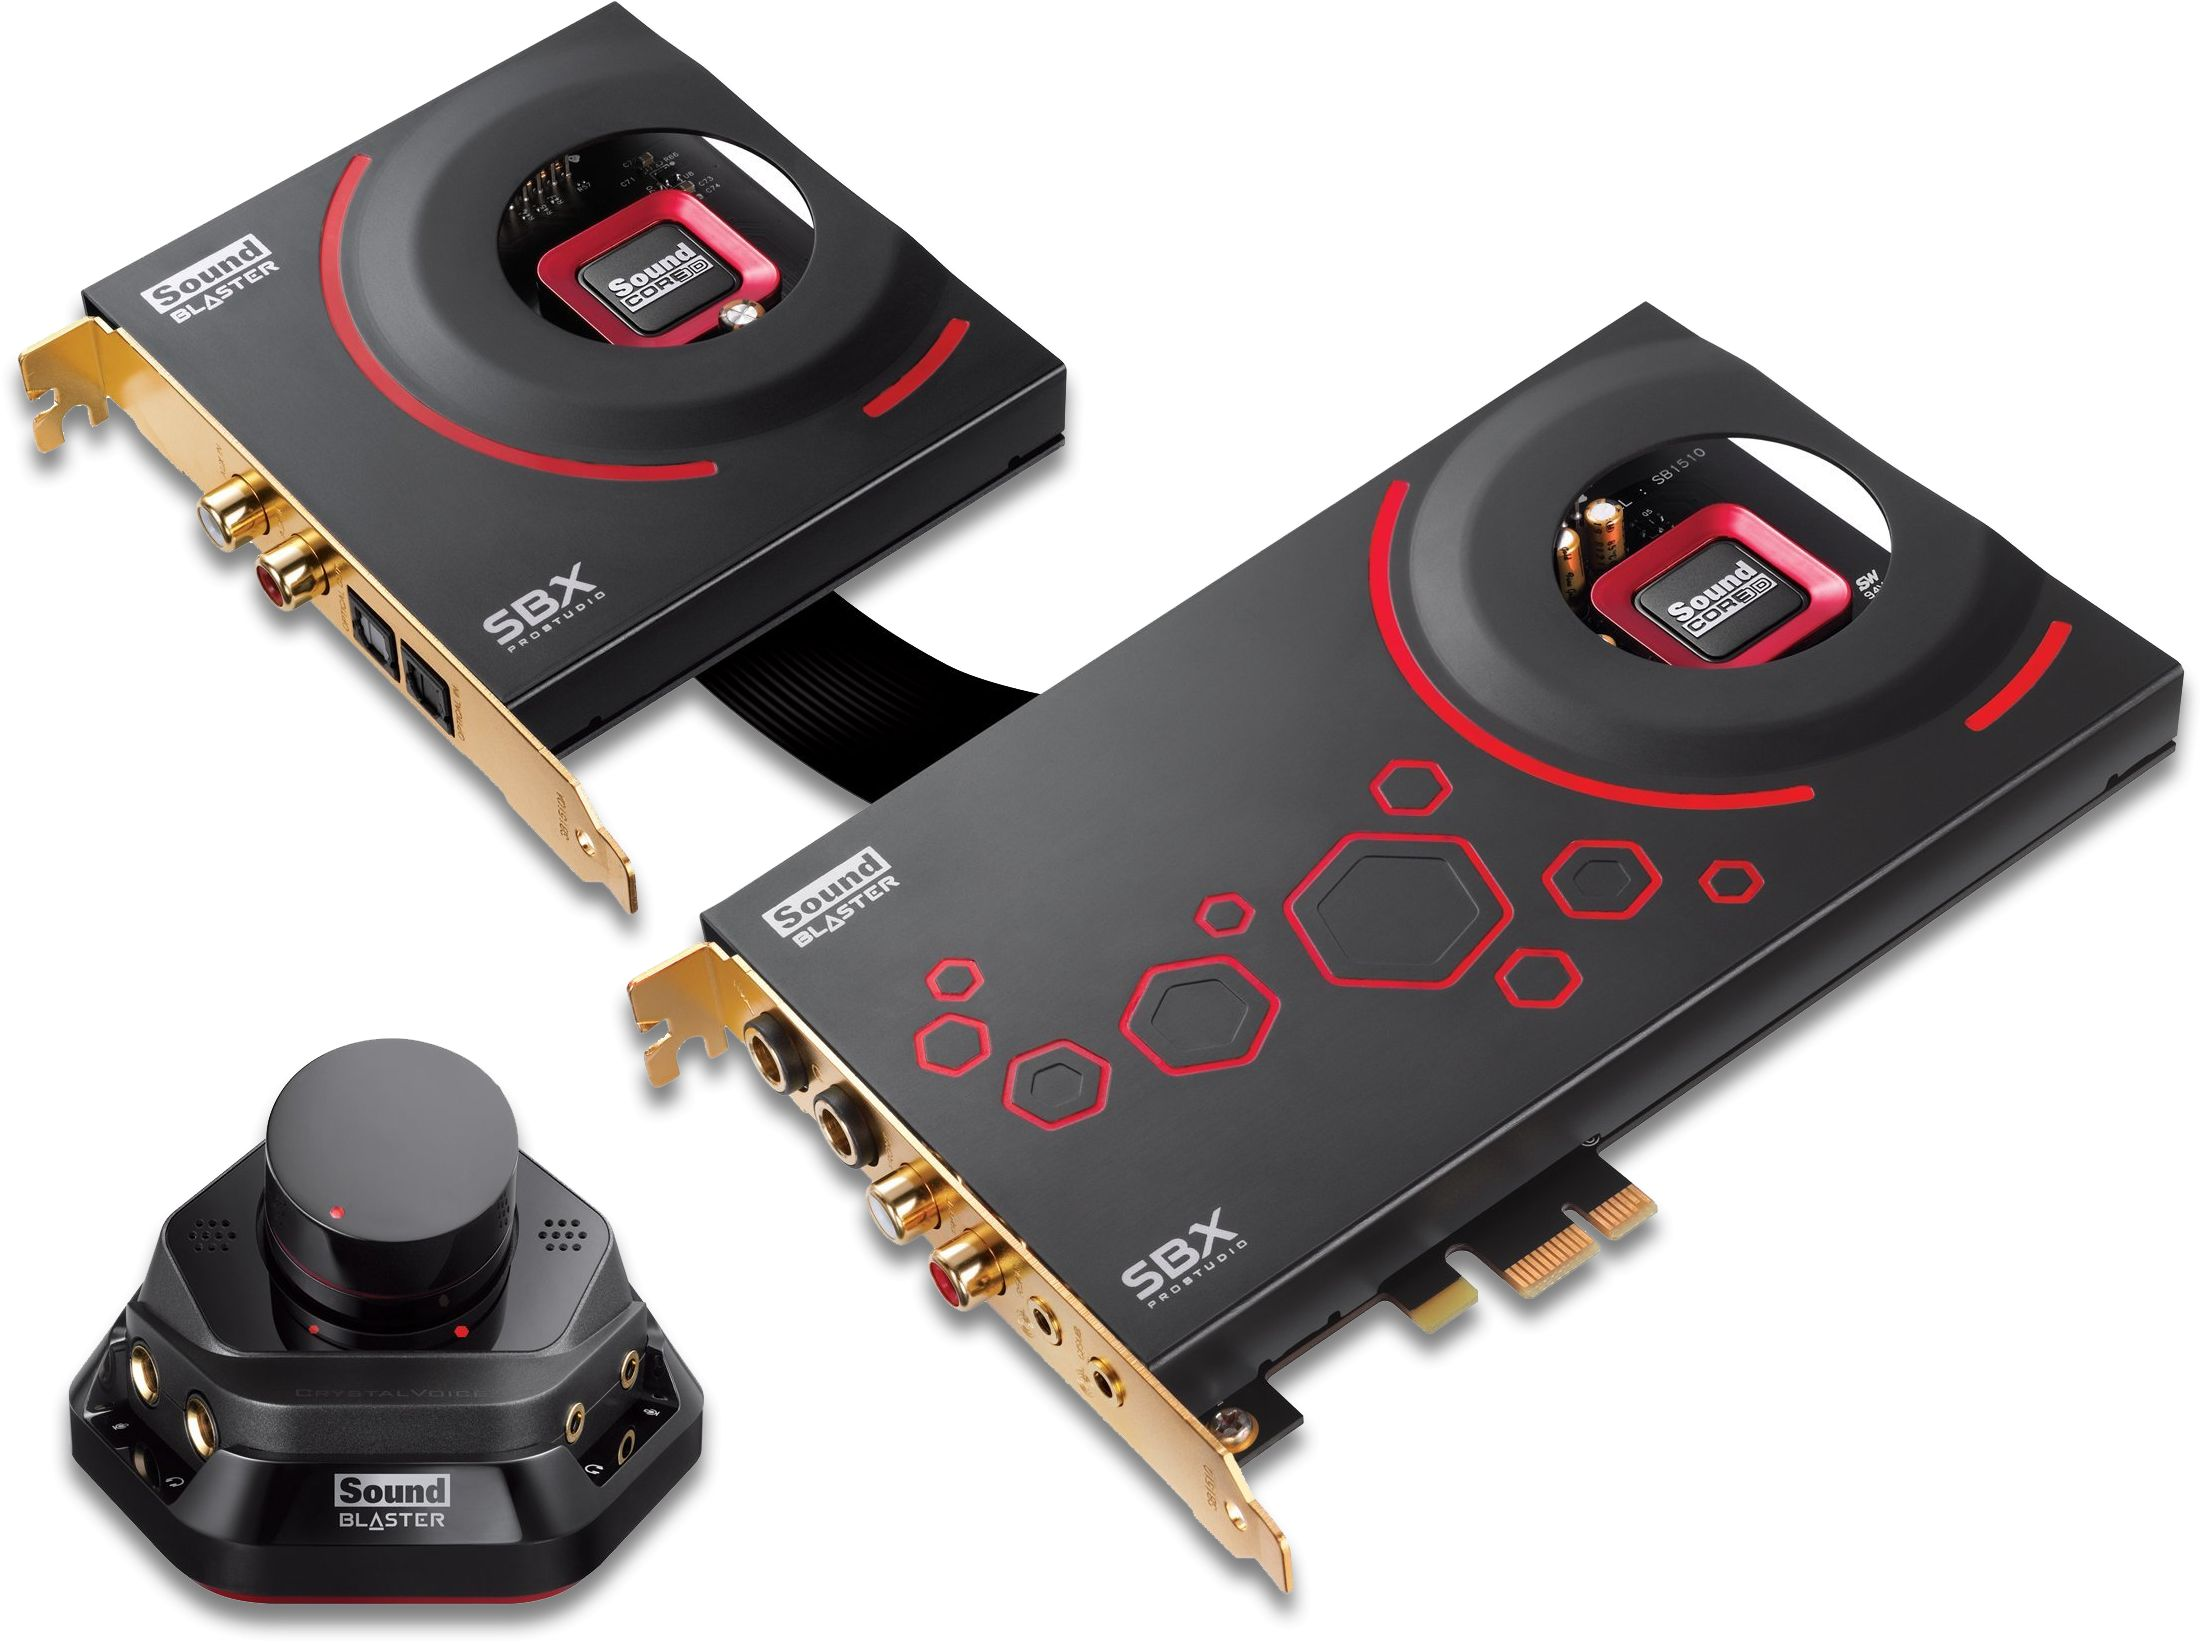 Sound Blaster ZxR PCIe Flagship Performance Sound Card